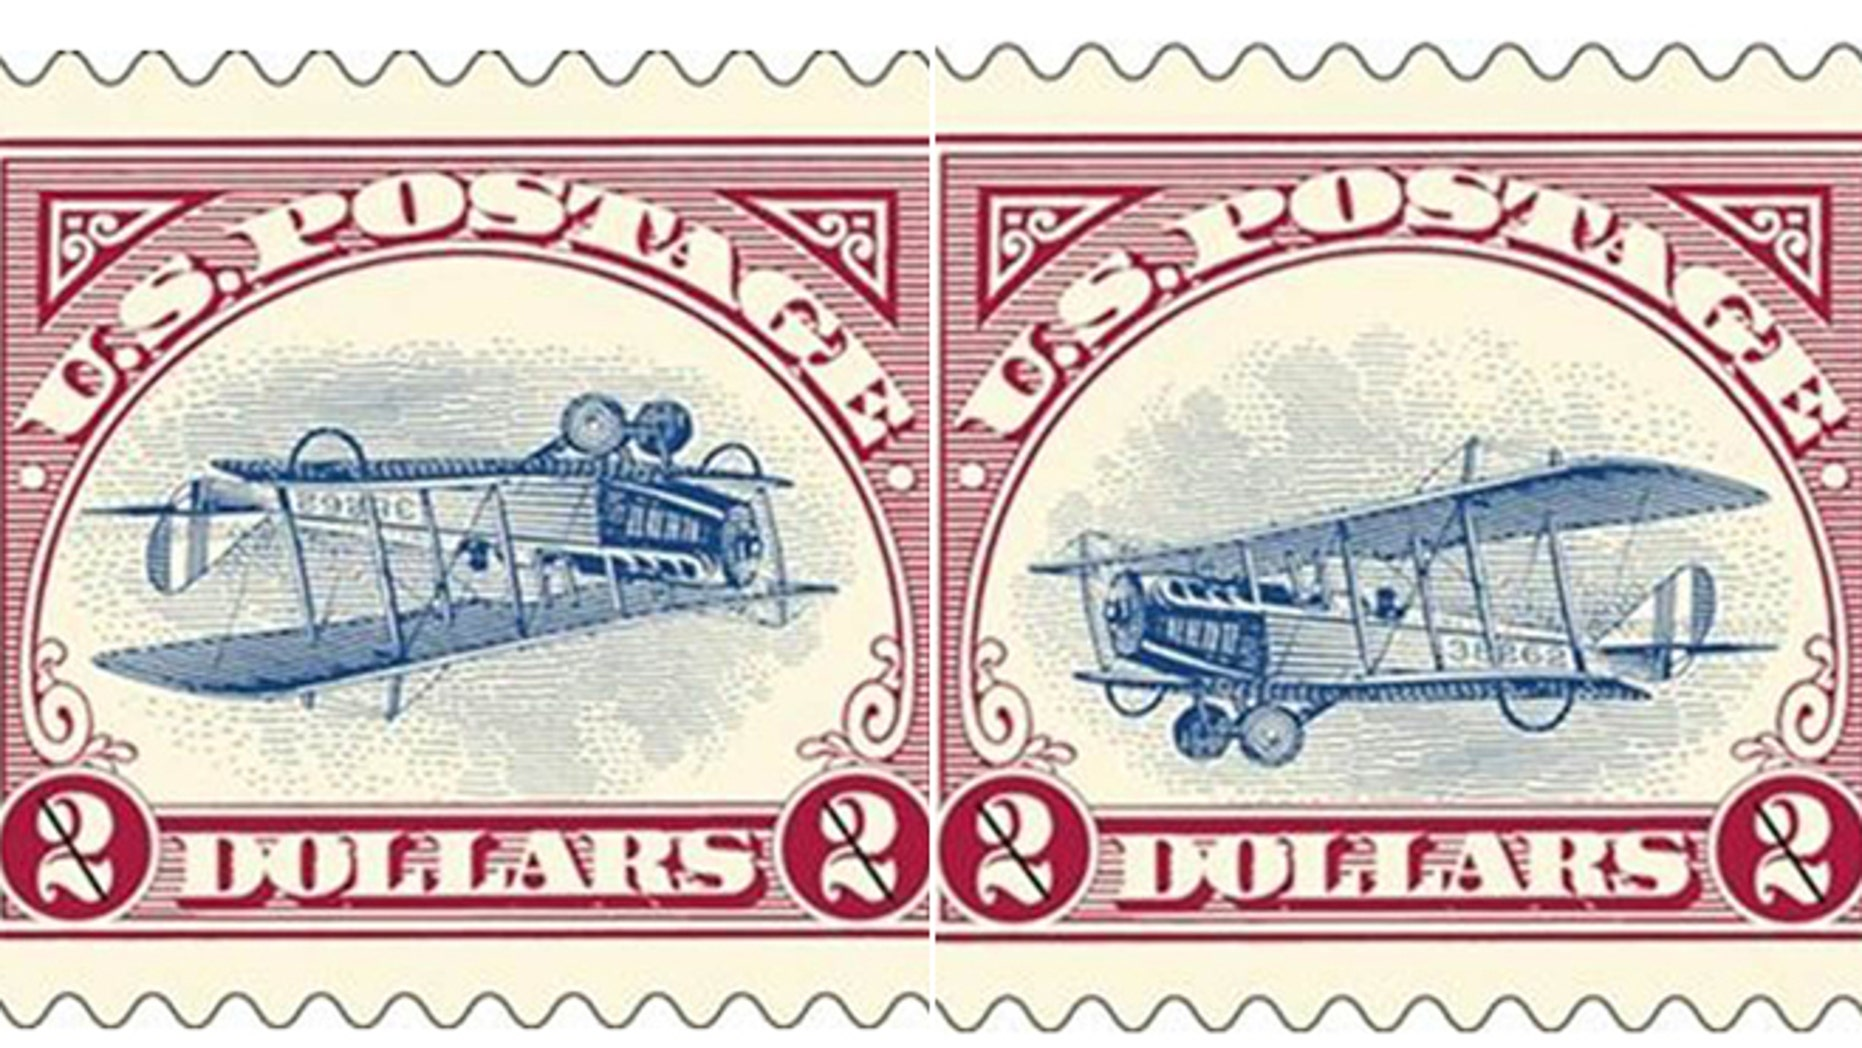 """In this combination of two 2013 photos released by the United States Postal Service, a reissue of two versions of the famous """"Inverted Jenny"""" postage stamp is shown. The original 1918 stamp was printed with the upside-down bi-plane by mistake. The """"mistake"""" was reissued by the USPS along with a limited run of corrected stamps in 2013 as a way to bring more people into stamp collecting. Art Van Riper, a western New York stamp collector, acted on a hunch and secured one of only 100 sheets of the corrected """"Inverted Jenny."""""""